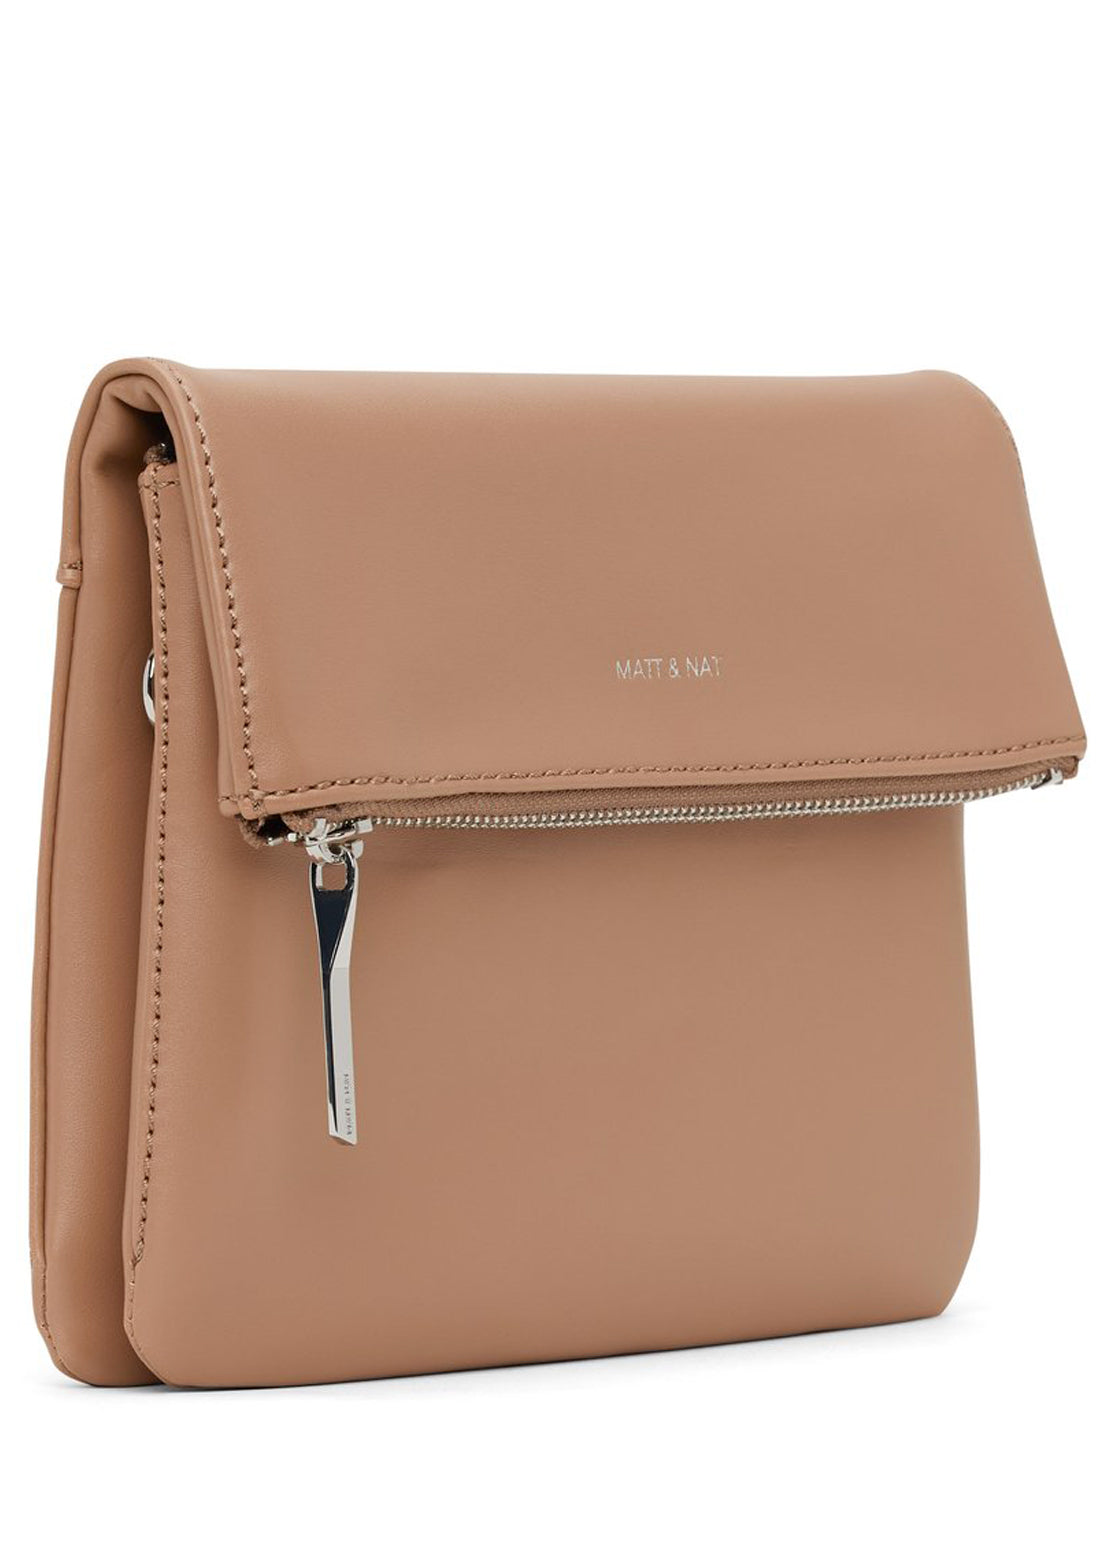 Matt & Nat Hiley Loom Crossbody Bag Cafe